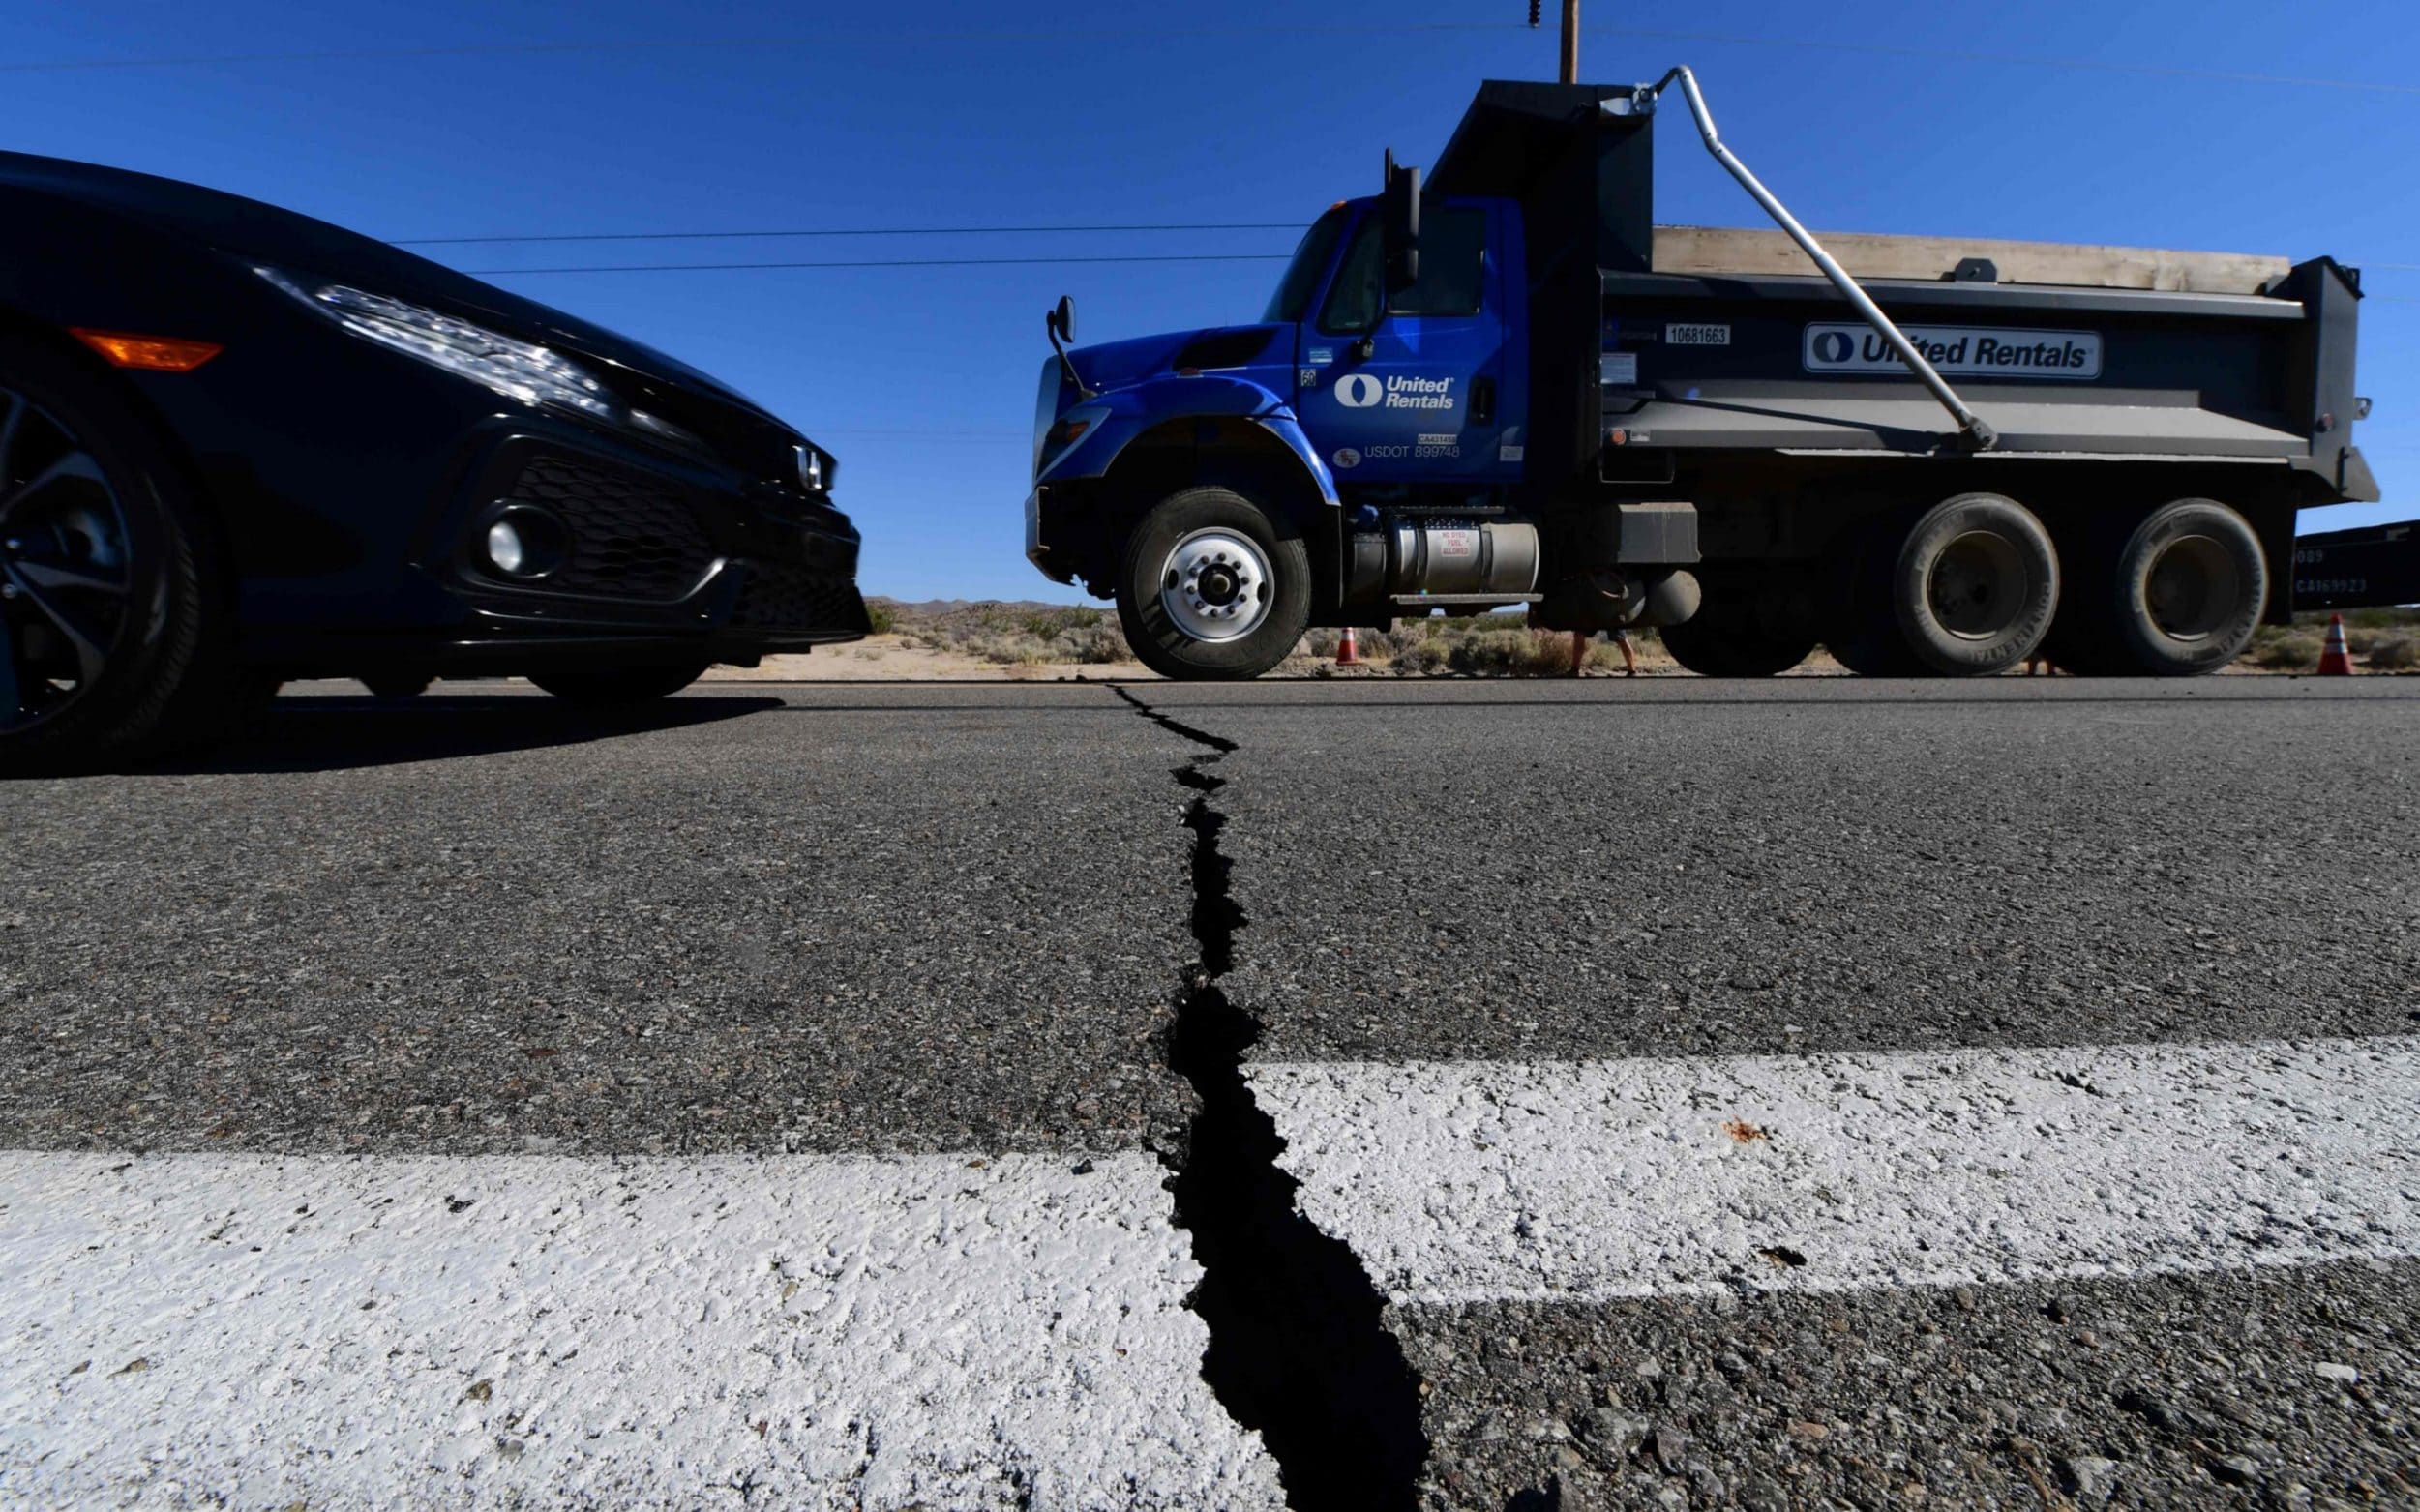 California has the biggest earthquake in 20 years: is it getting close to The Big One?